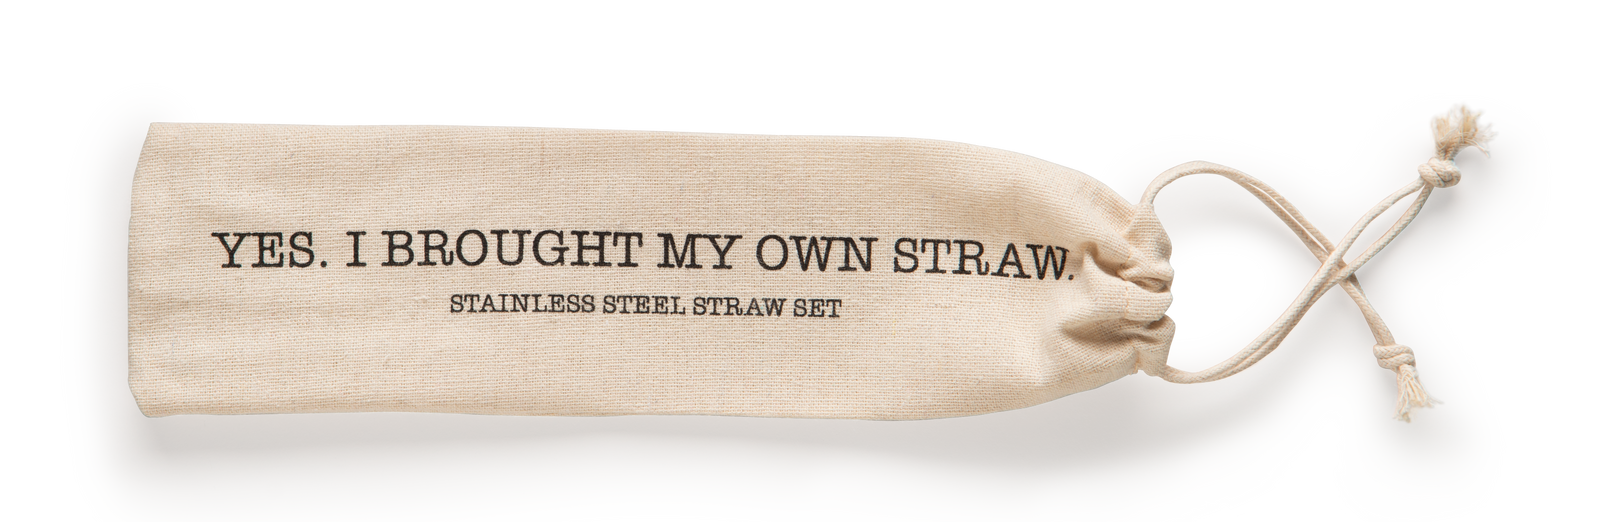 Yes. I Brought My Own Straw. Reusable Stainless Steel Straw Set